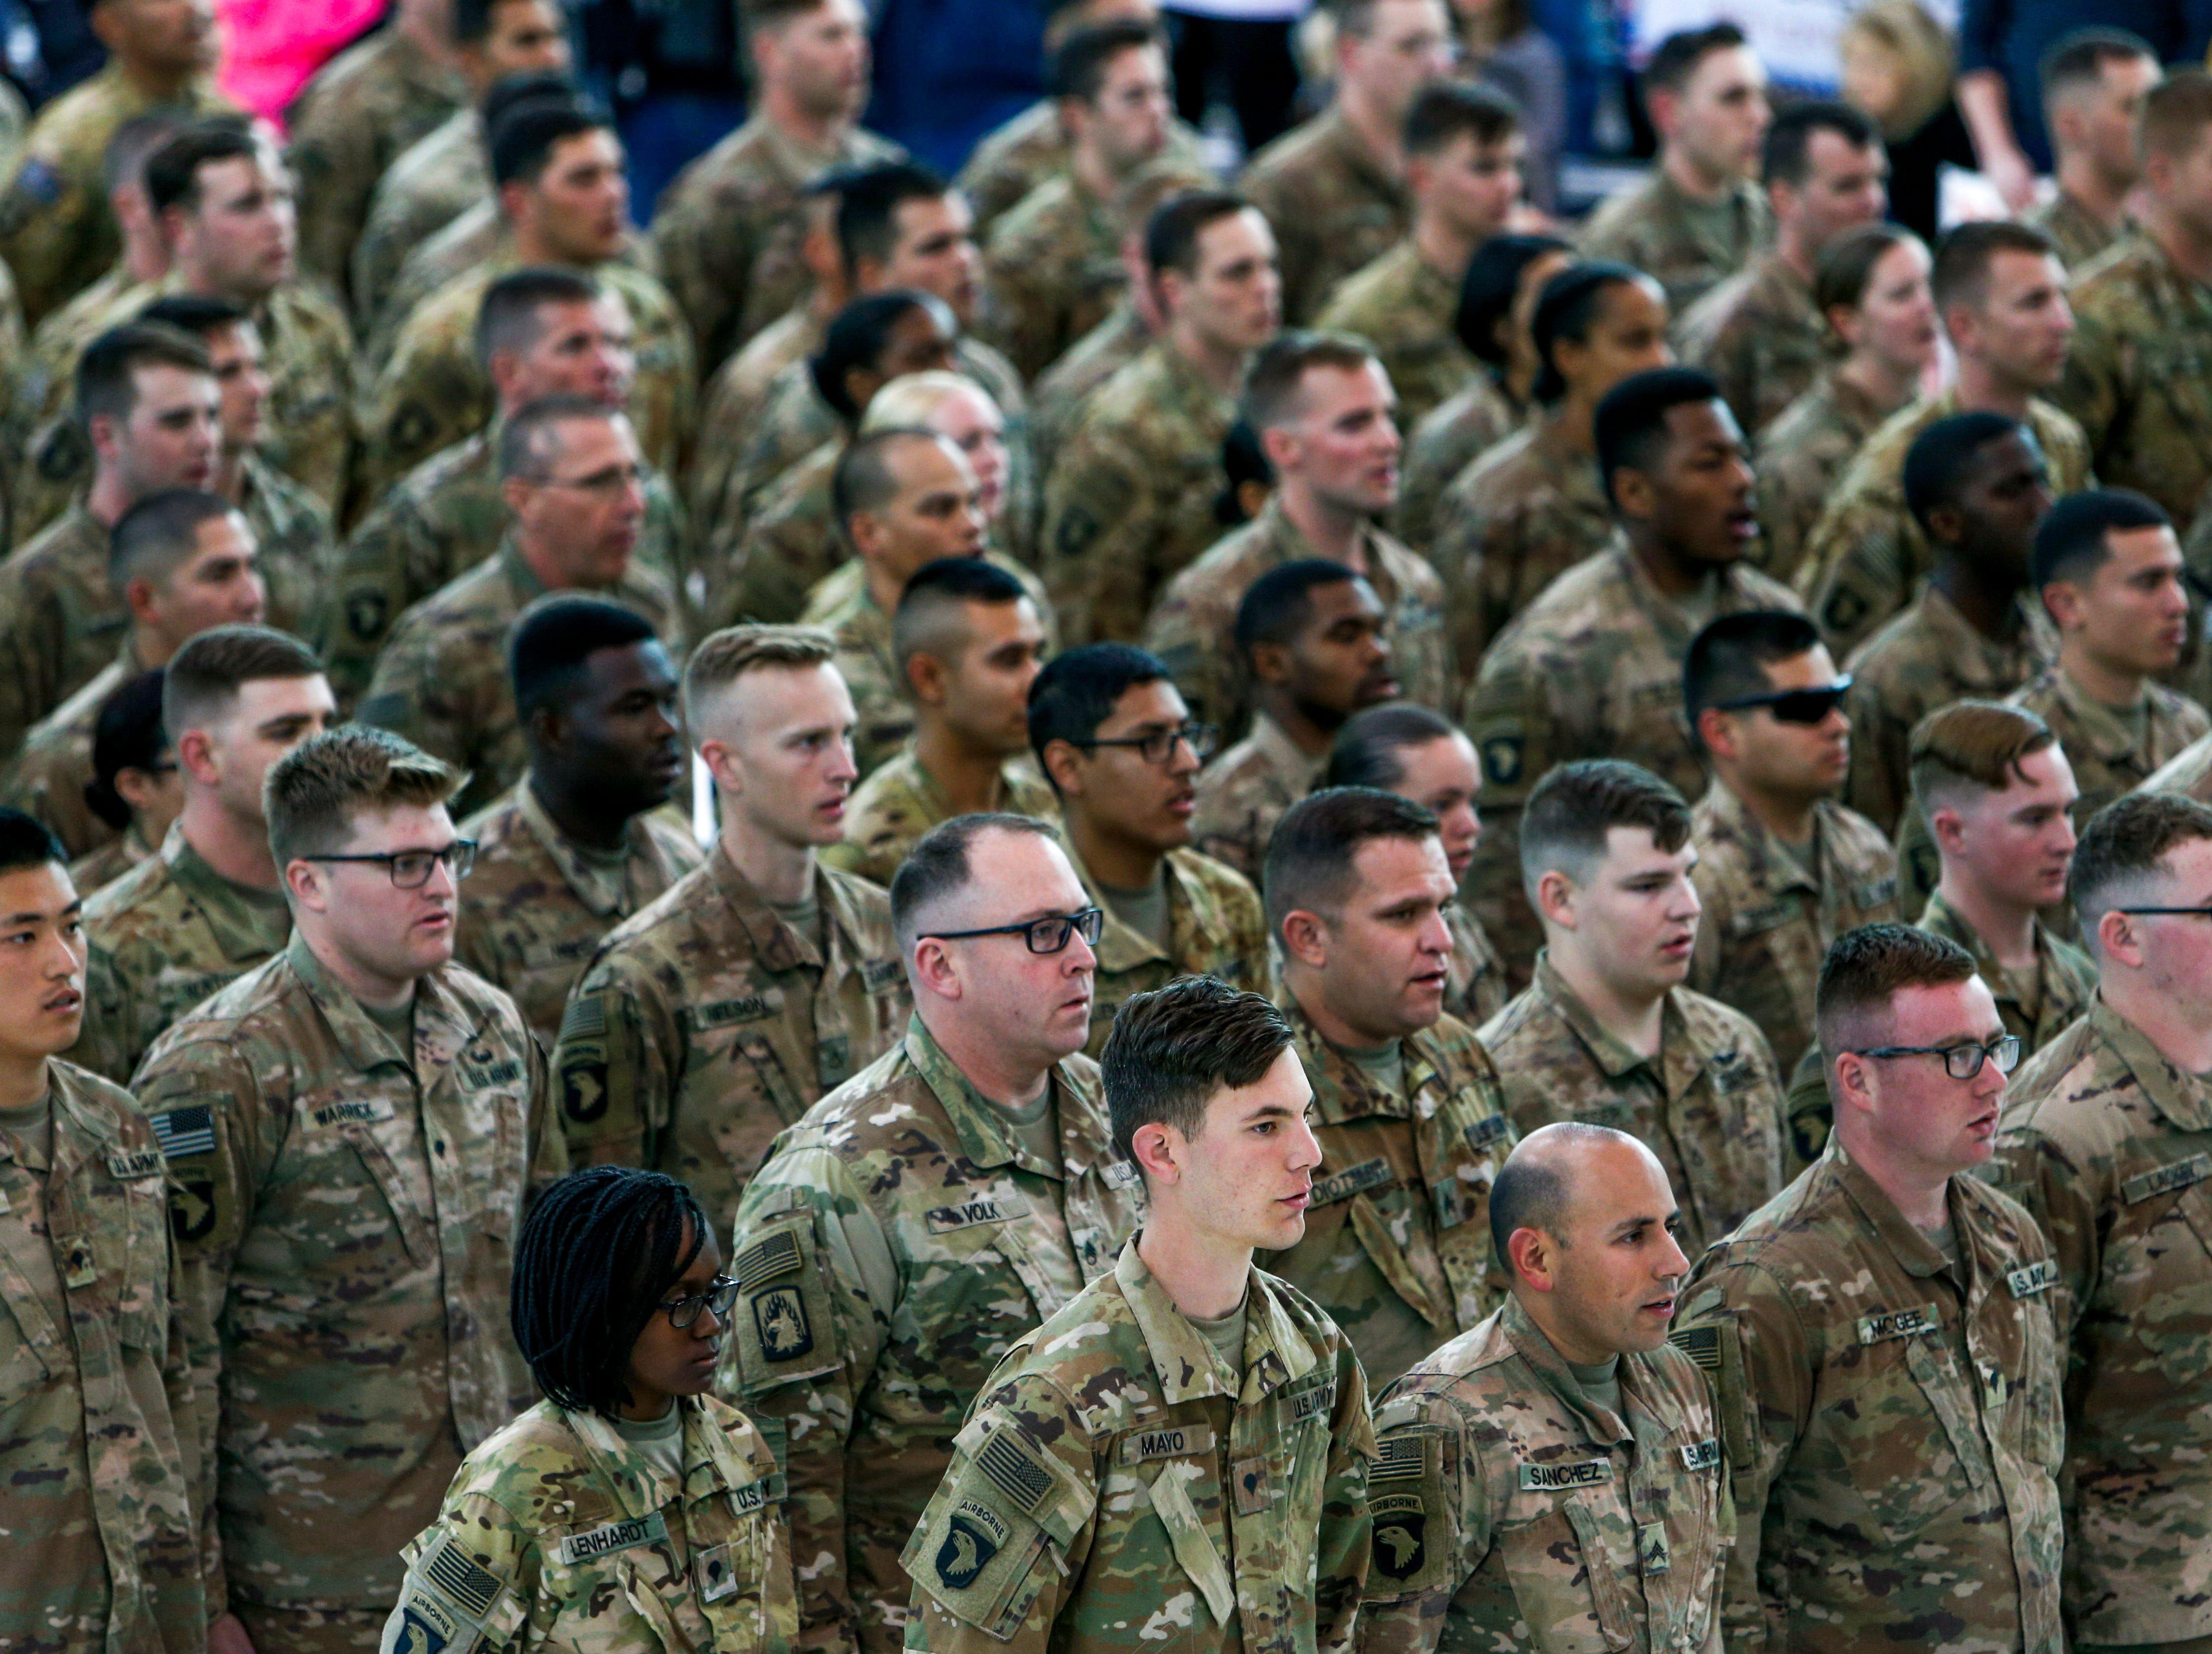 Troops stand at attention before being dismissed to see family during the return of soldiers from the 101st Combat Aviation Brigade of 101st Airborne Division (Air Assault) at Campbell Army Air Field in Fort Campbell, KY., on Sunday, March 10, 2019.